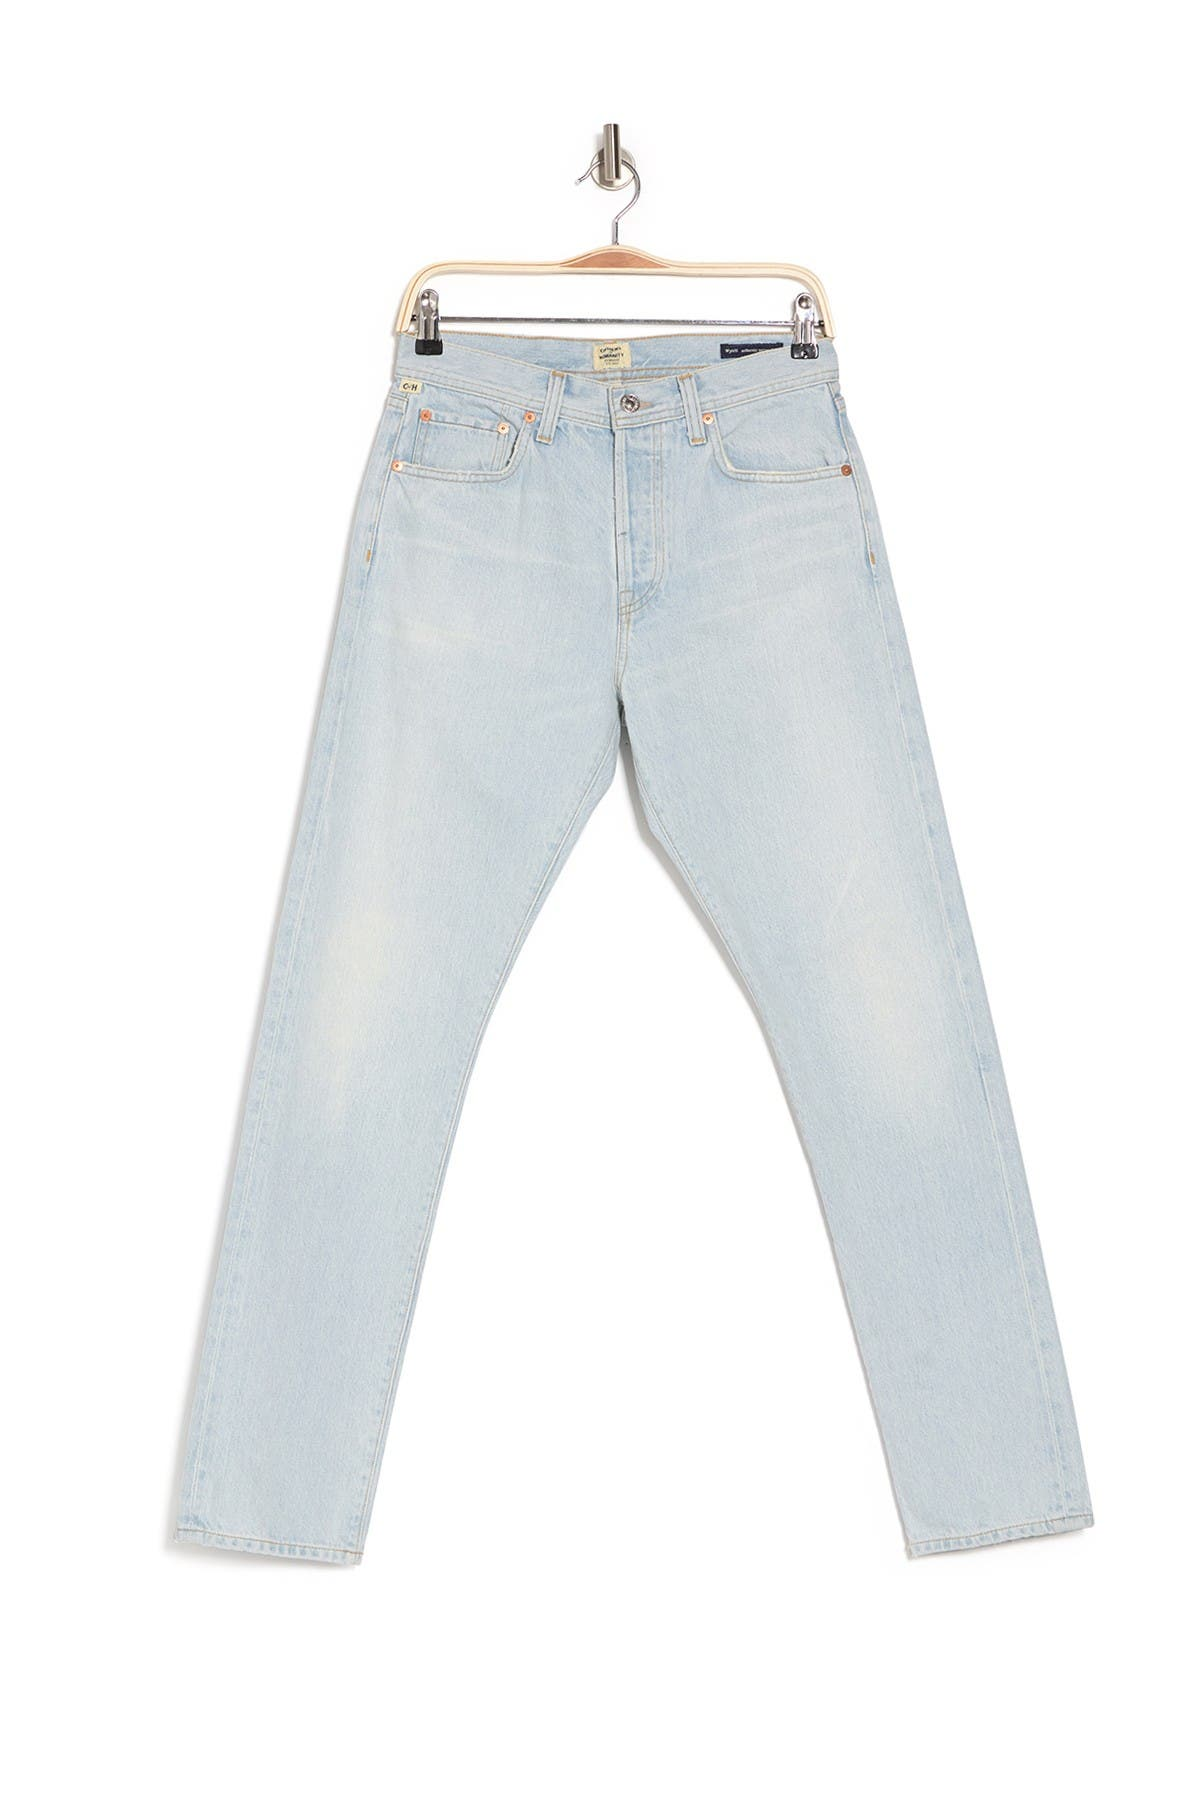 Image of Citizens Of Humanity Wyatt Authentic Narrow Fit Jeans